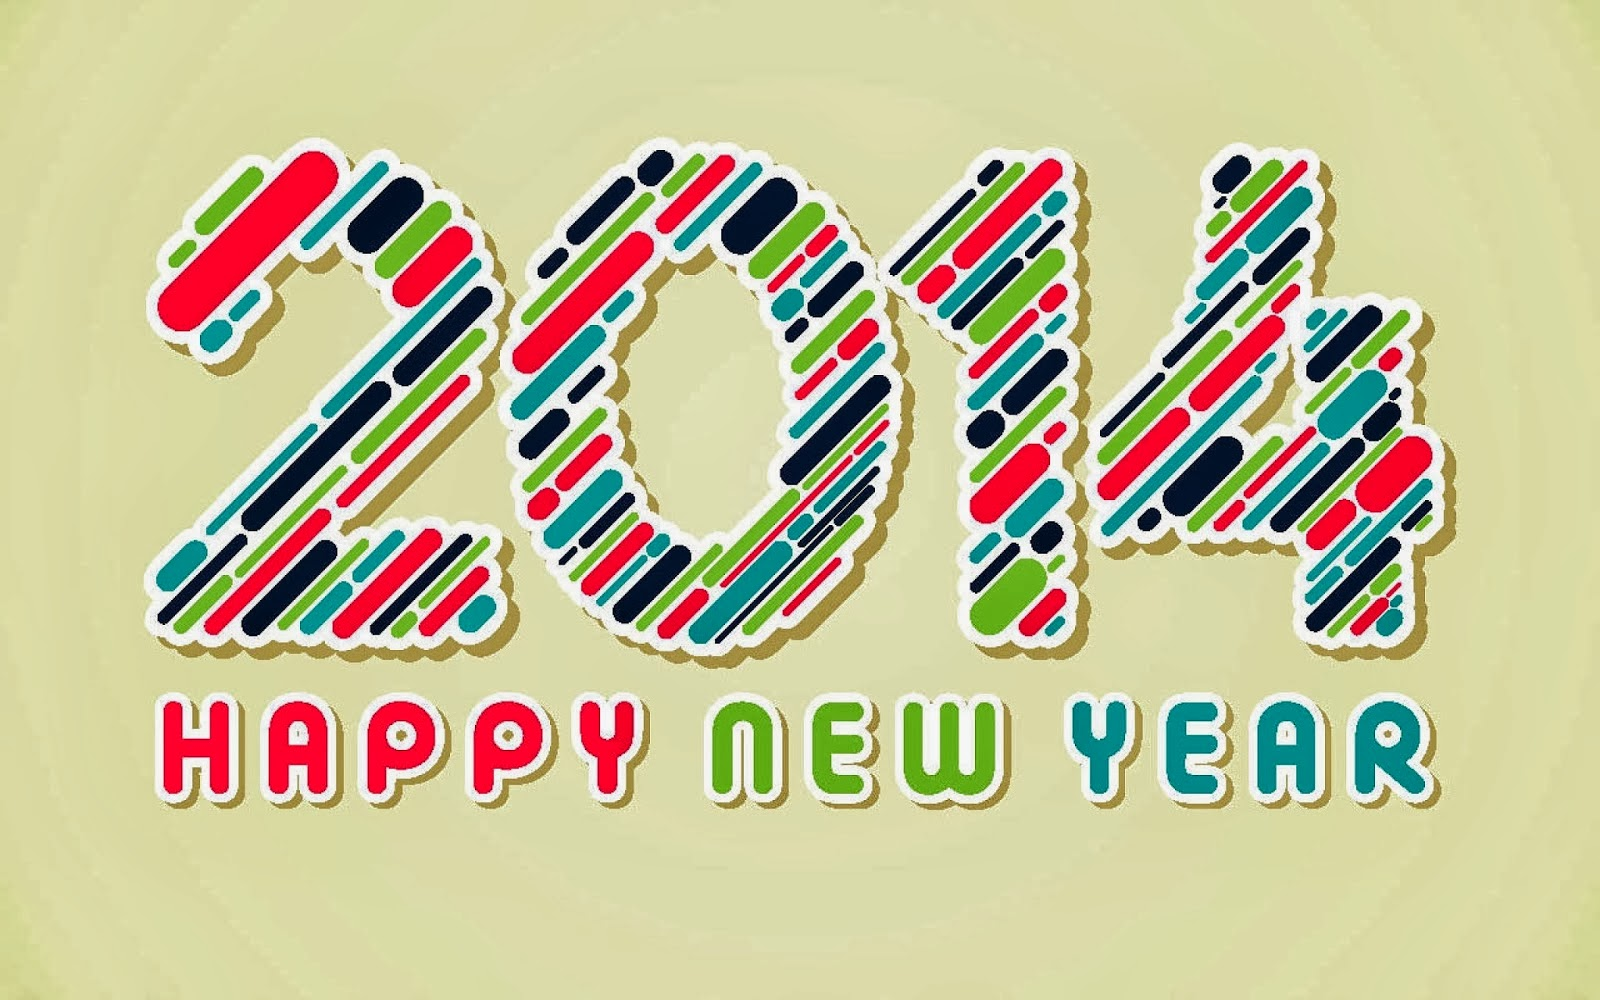 Happy New Year Clipart Free 2014 Download   Happy Newyear 2014 2015